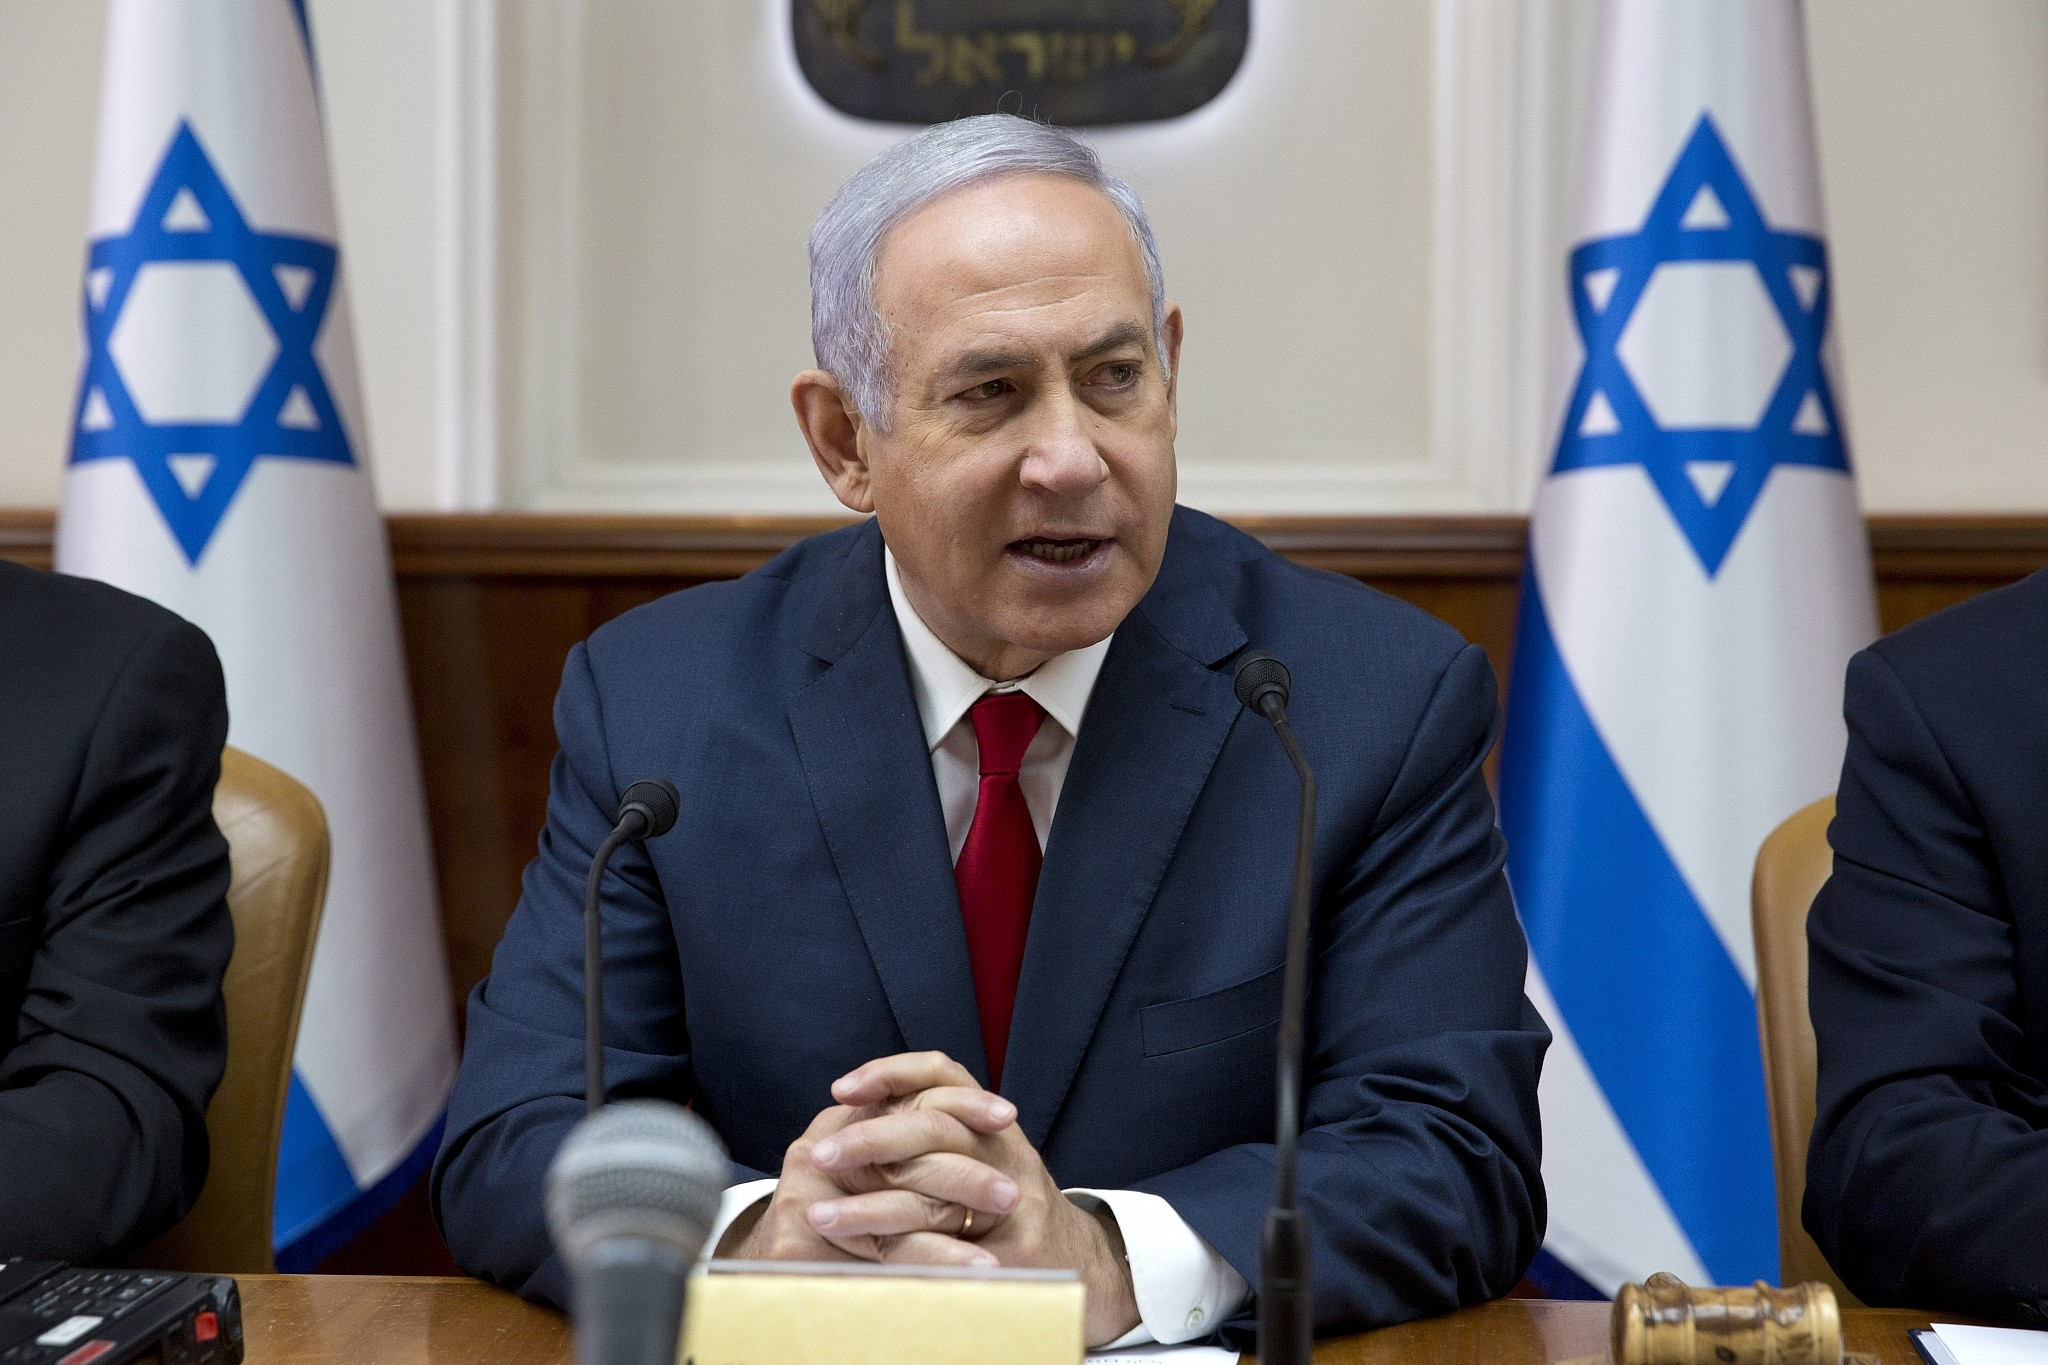 Poland summons Israeli ambassador to clarify Netanyahu comments on Poles in Holocaust